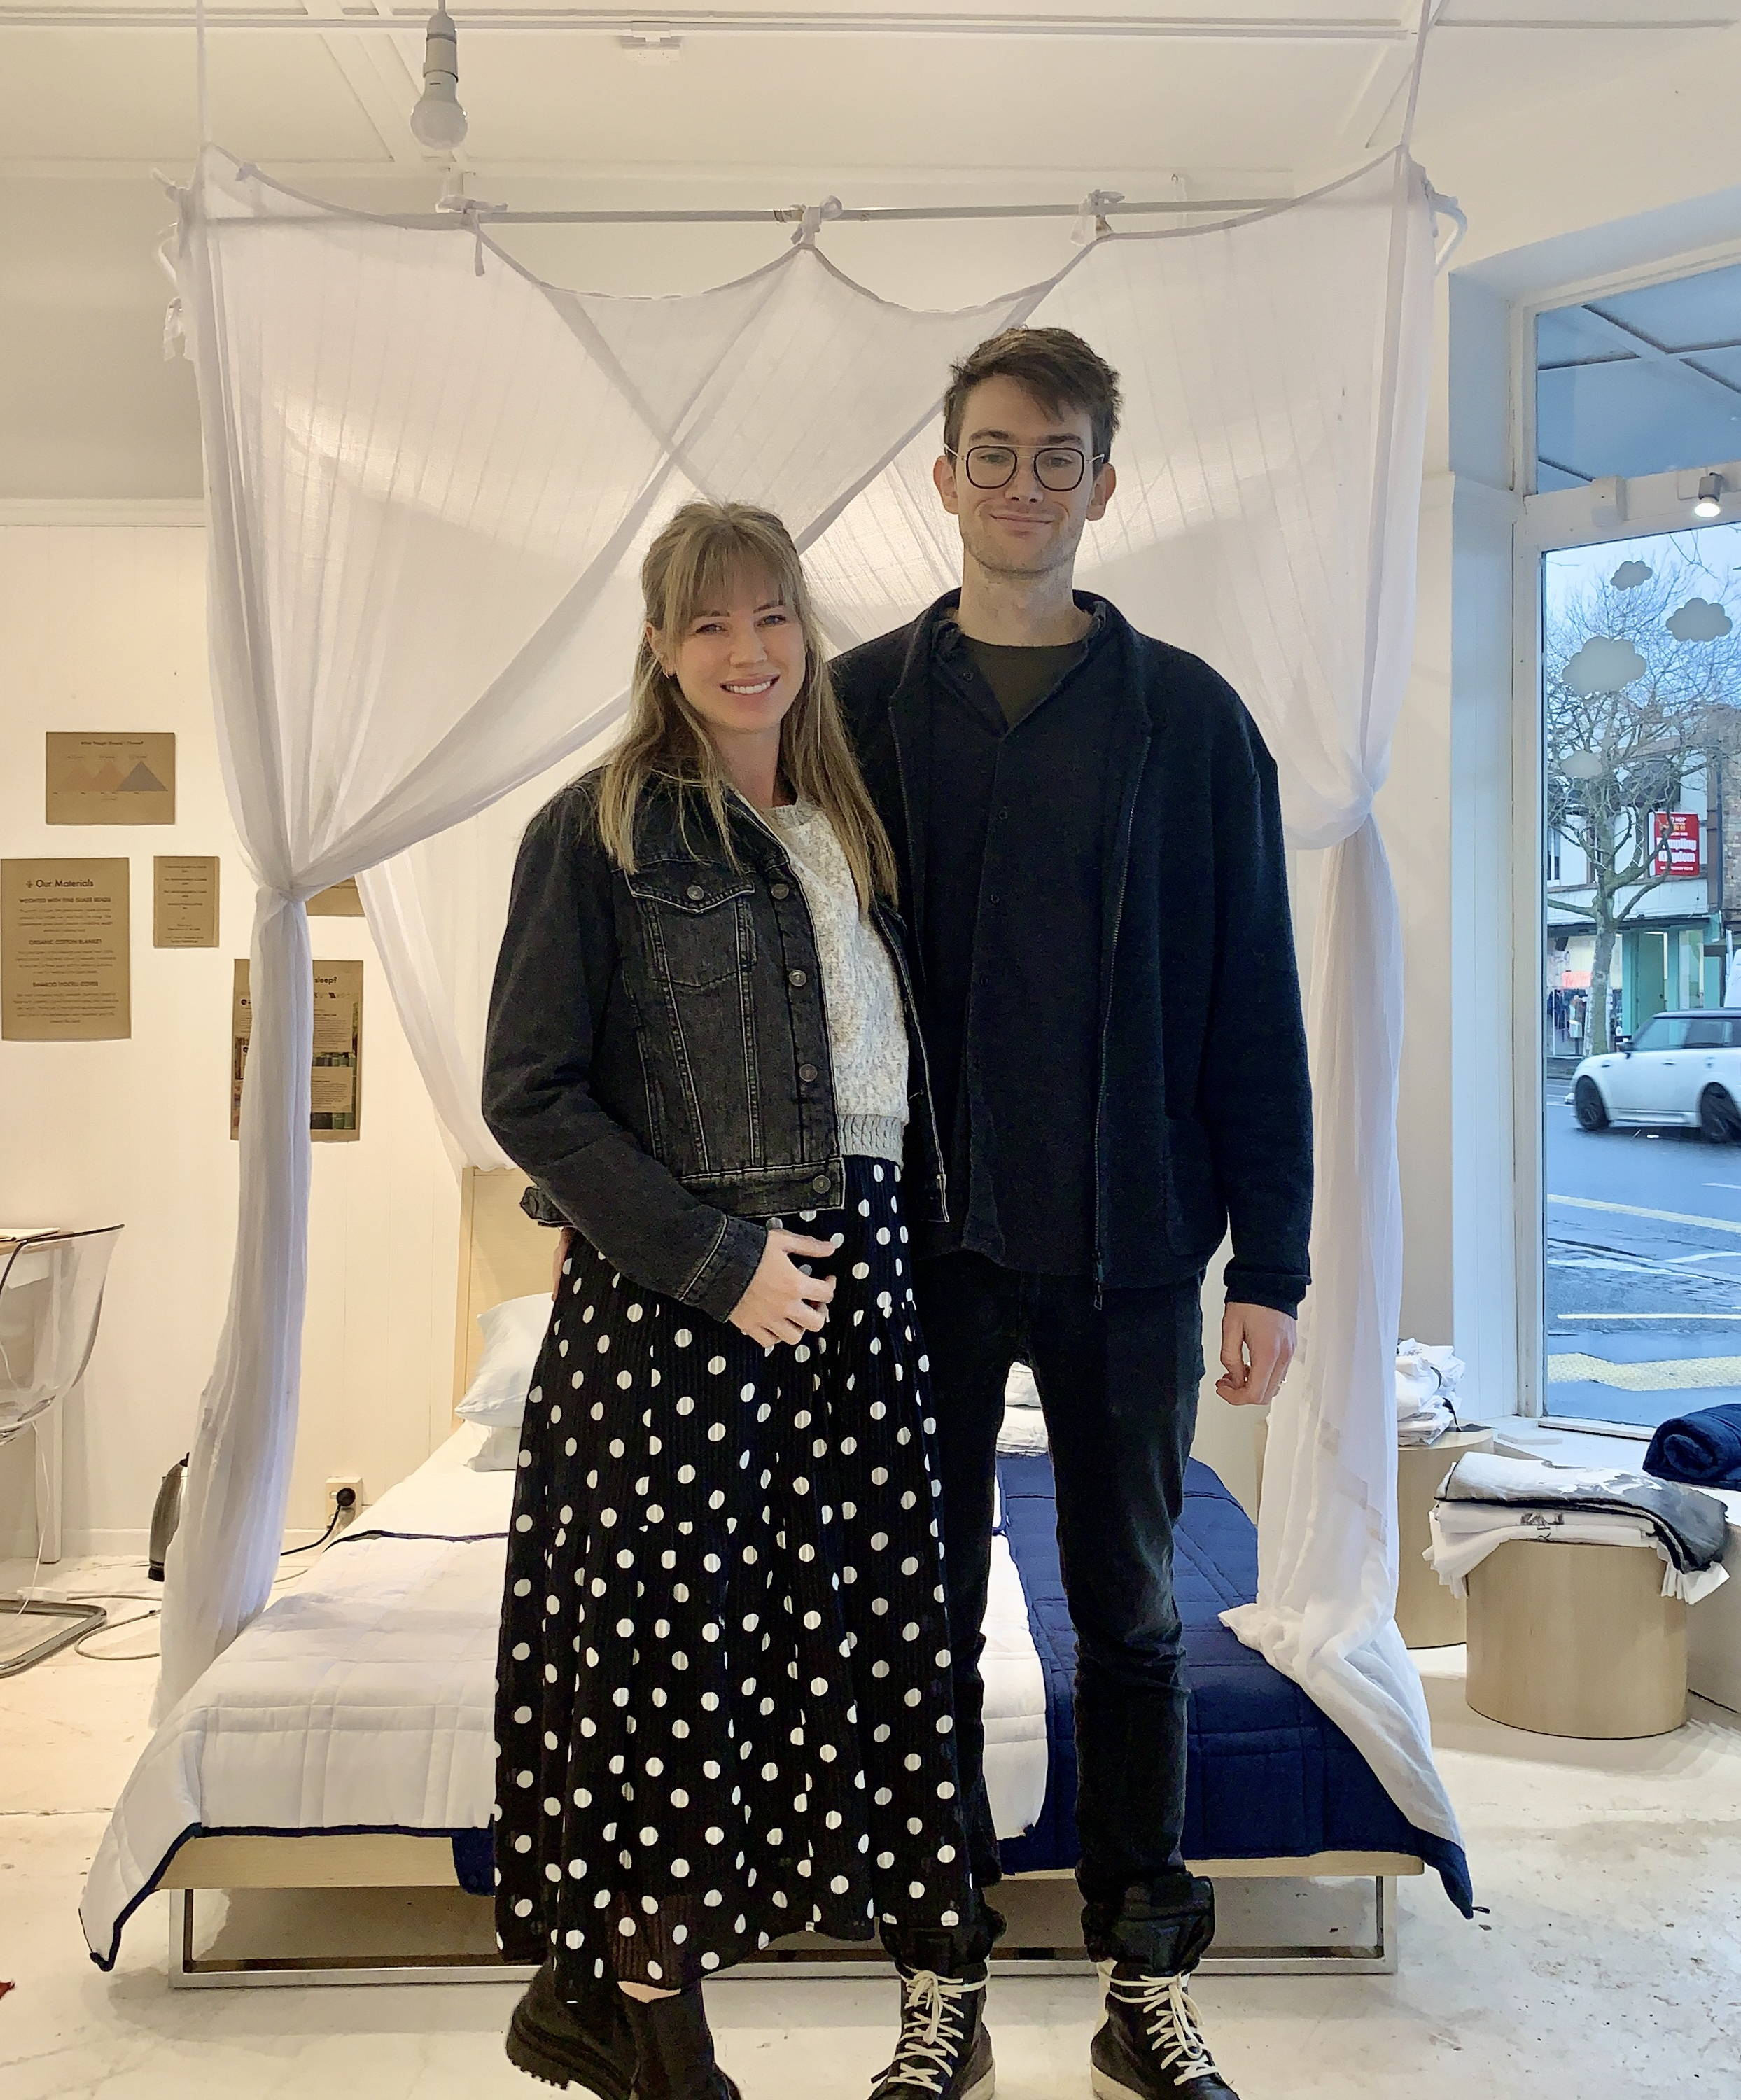 Groundd Weighted Blanket founders